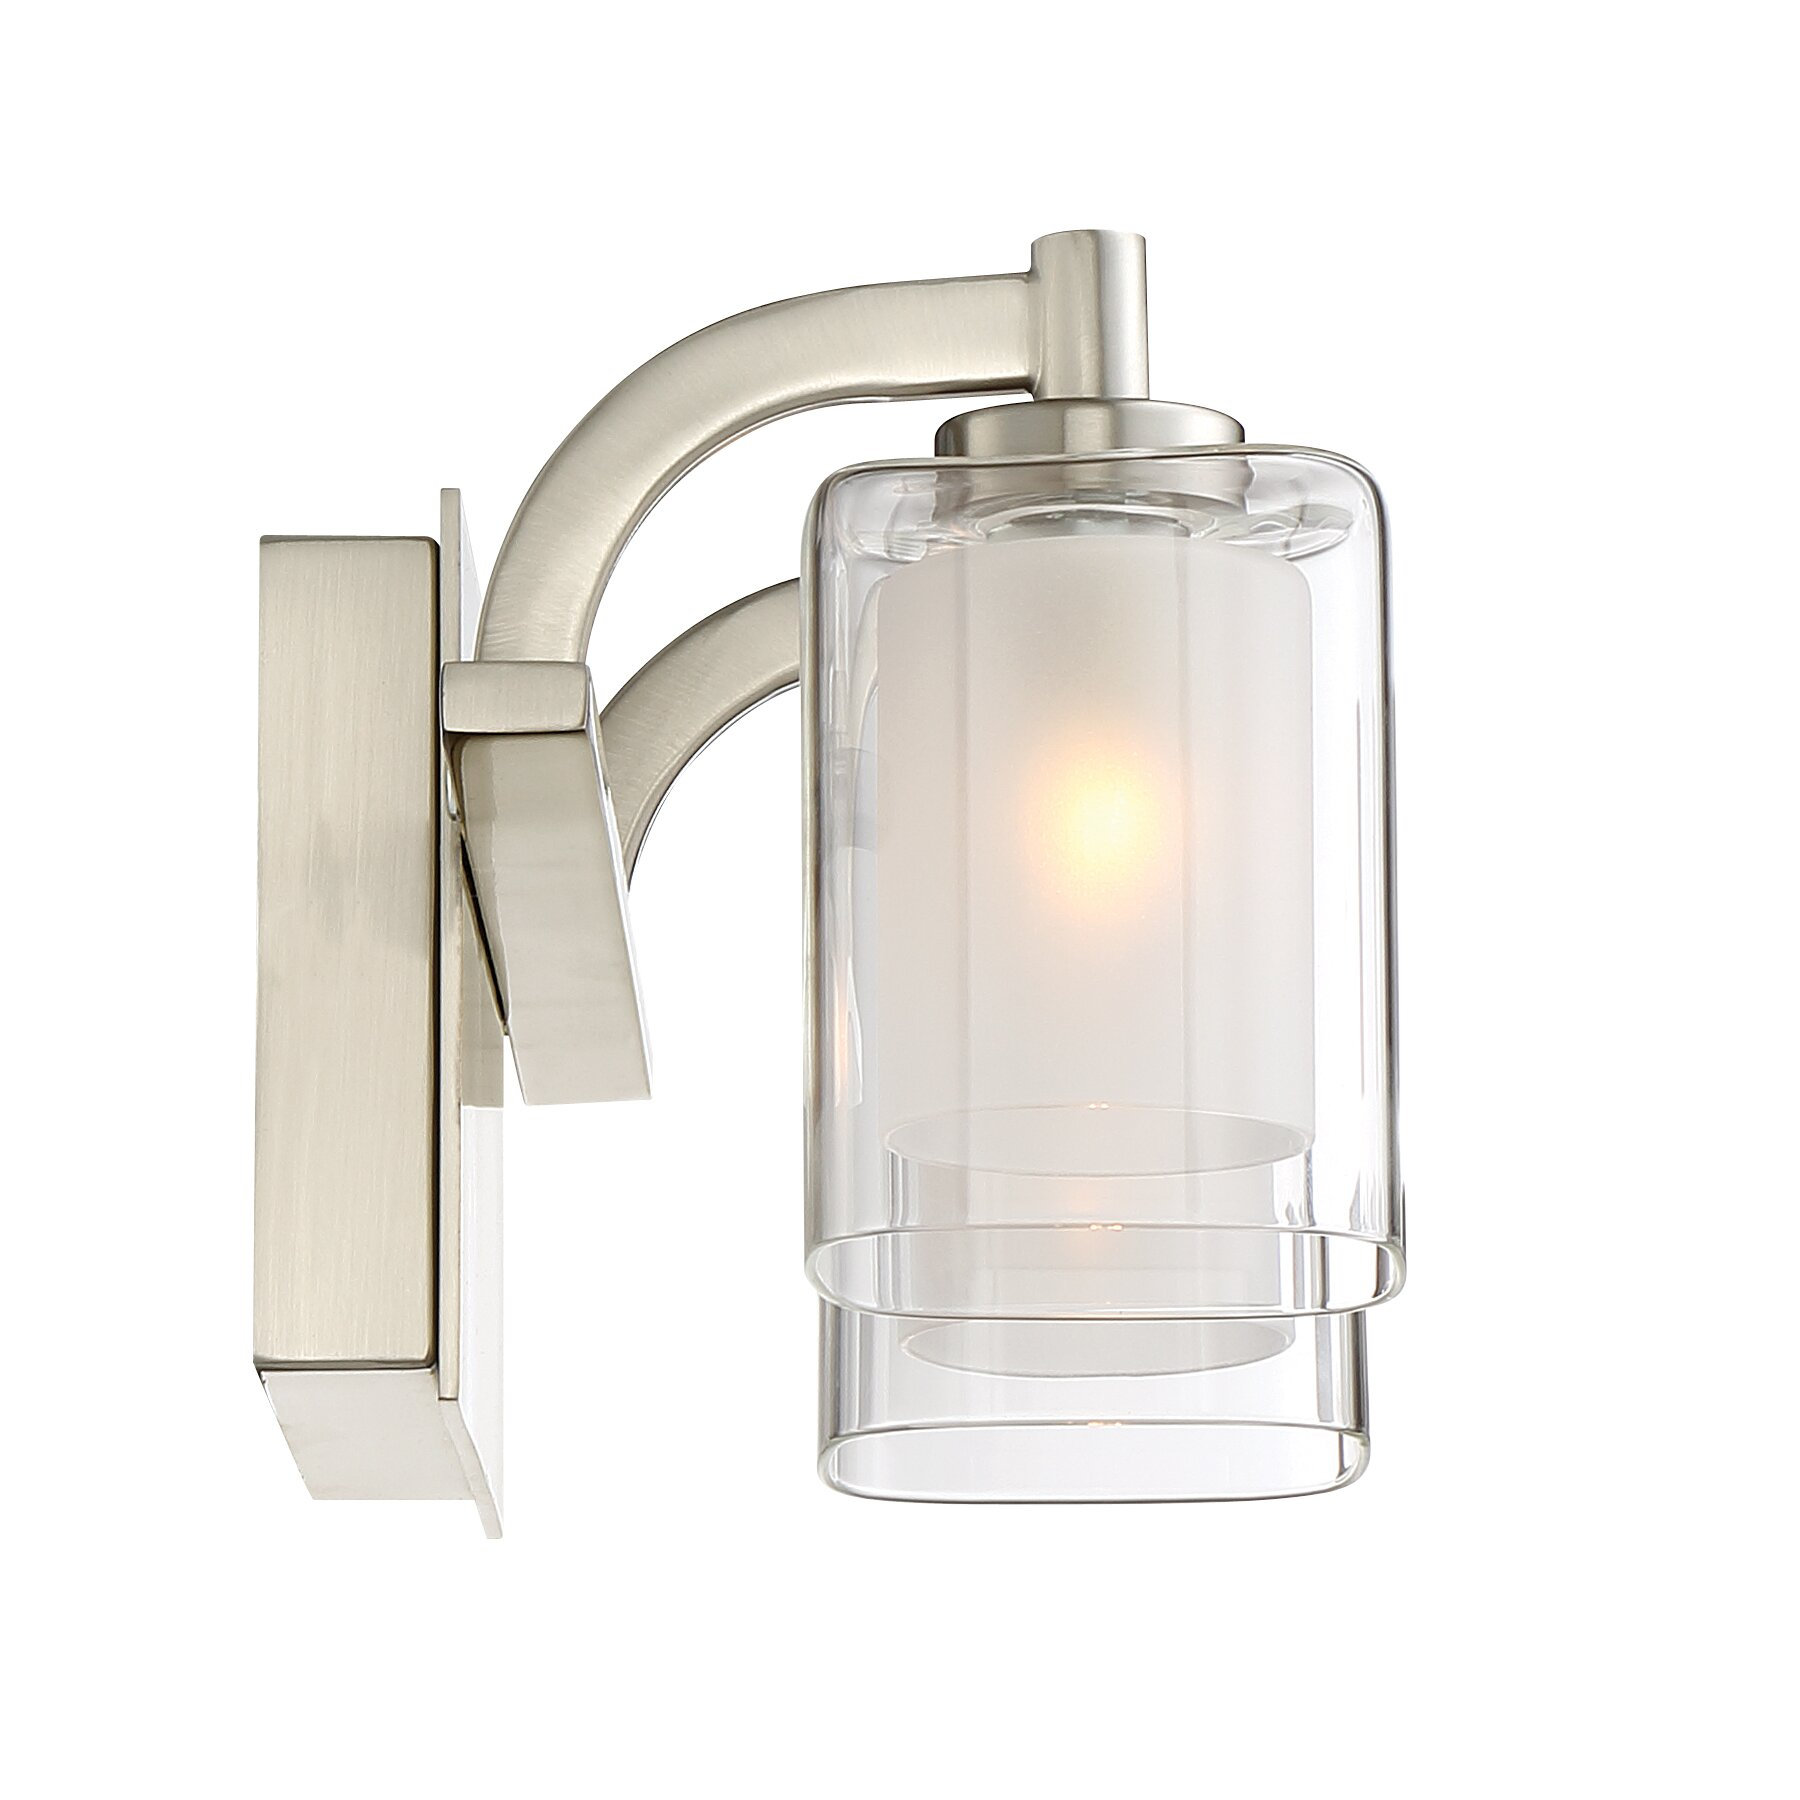 Quoizel Kolt 2 Light Vanity light & Reviews Wayfair